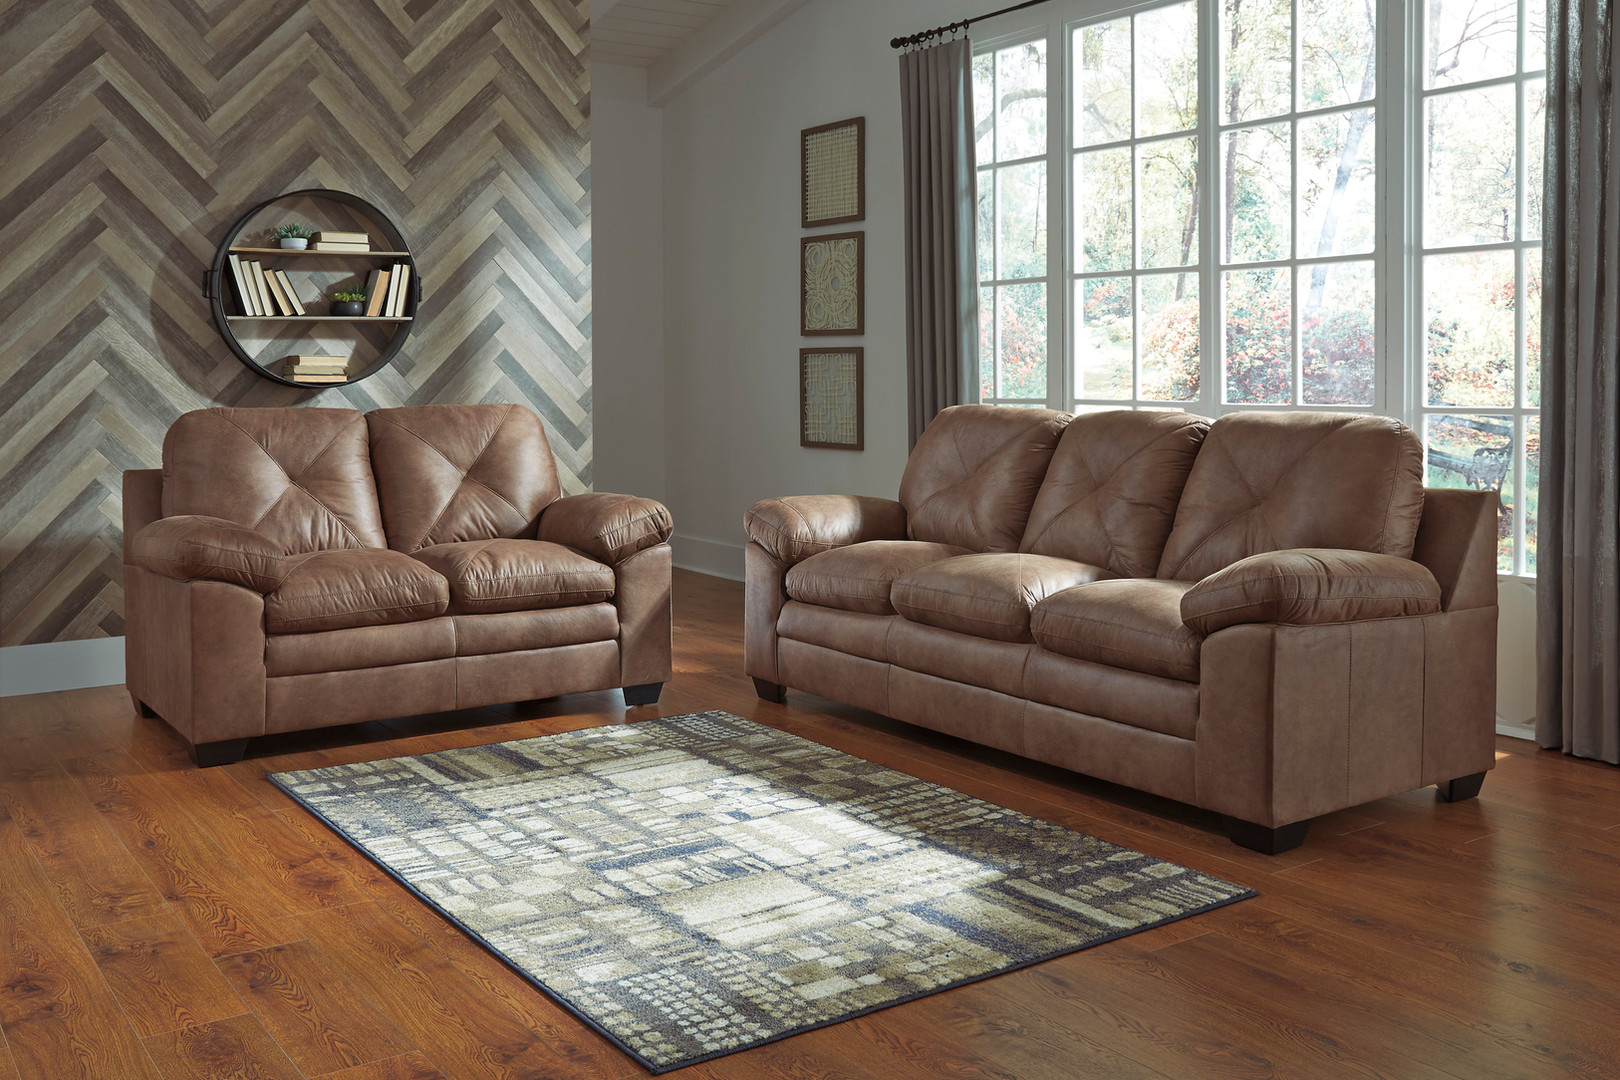 The Speyer Sofa Set